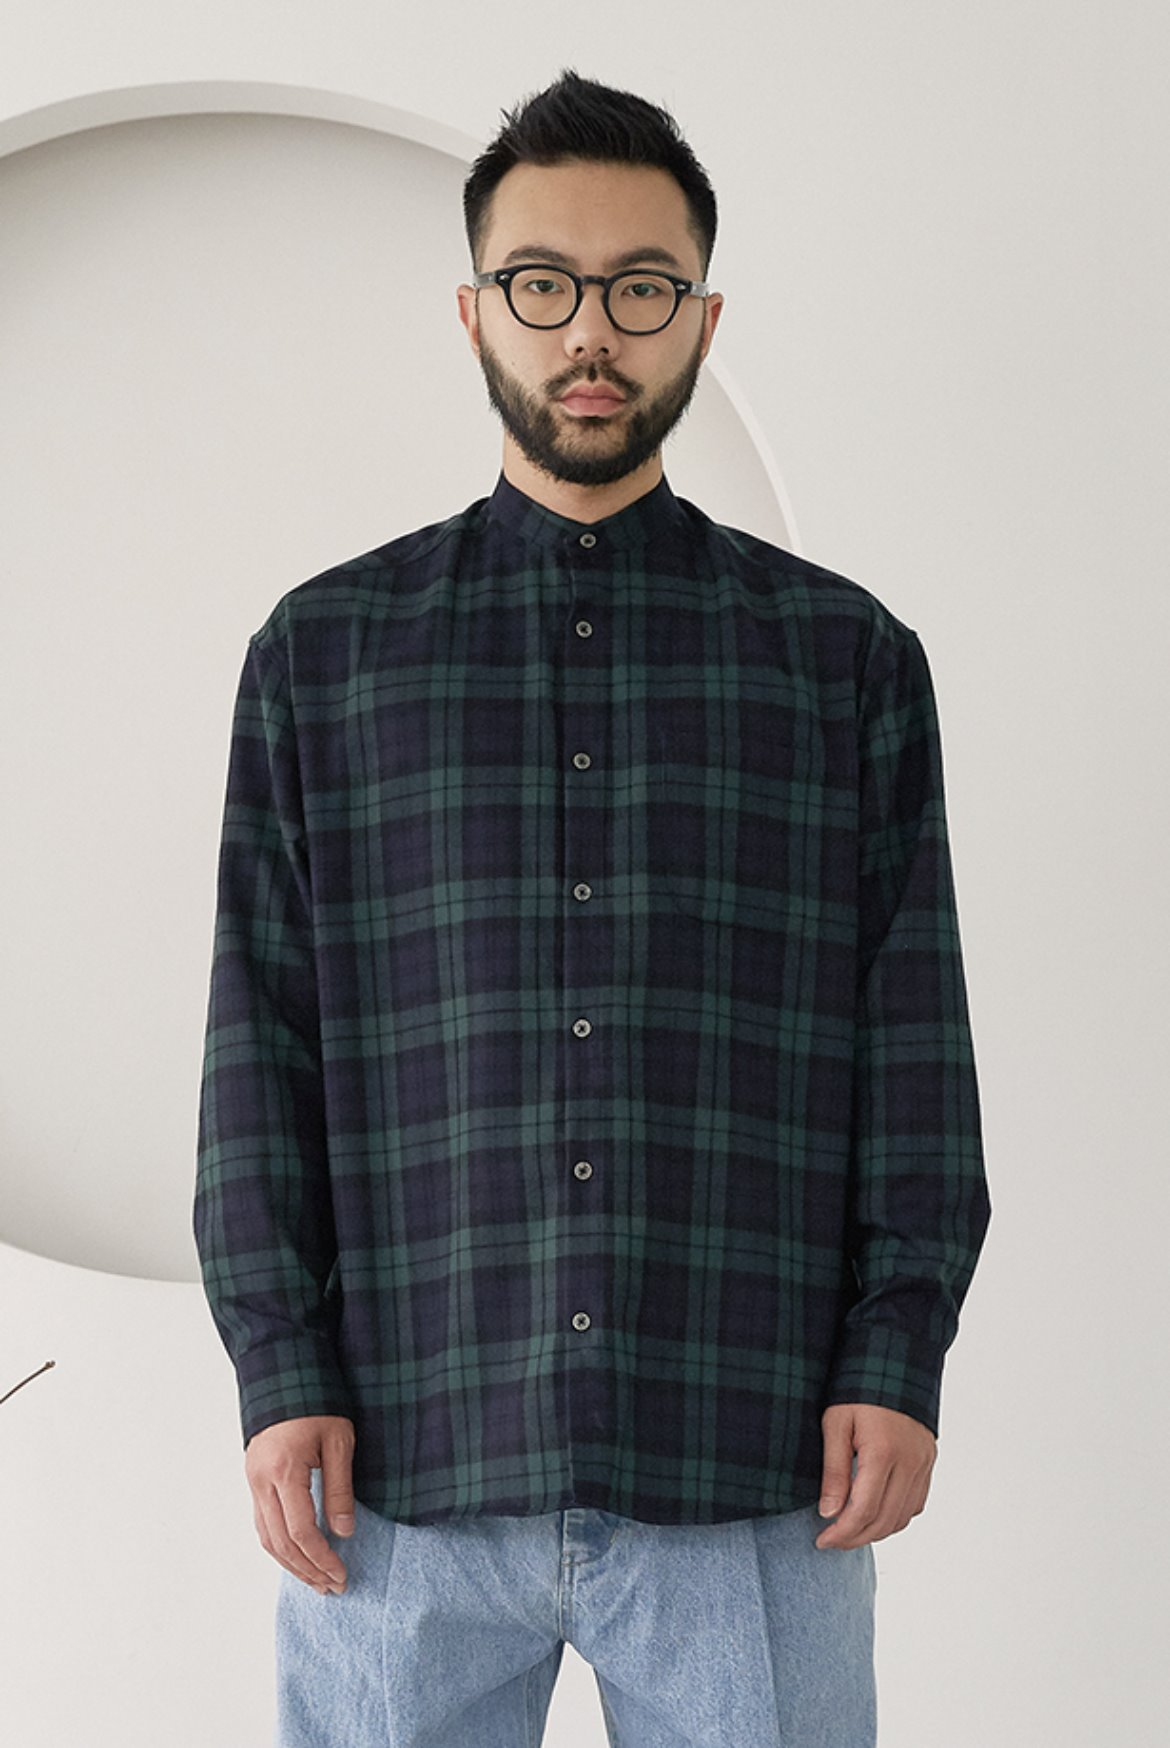 Banded Collar Long Shirts [Black Watch]